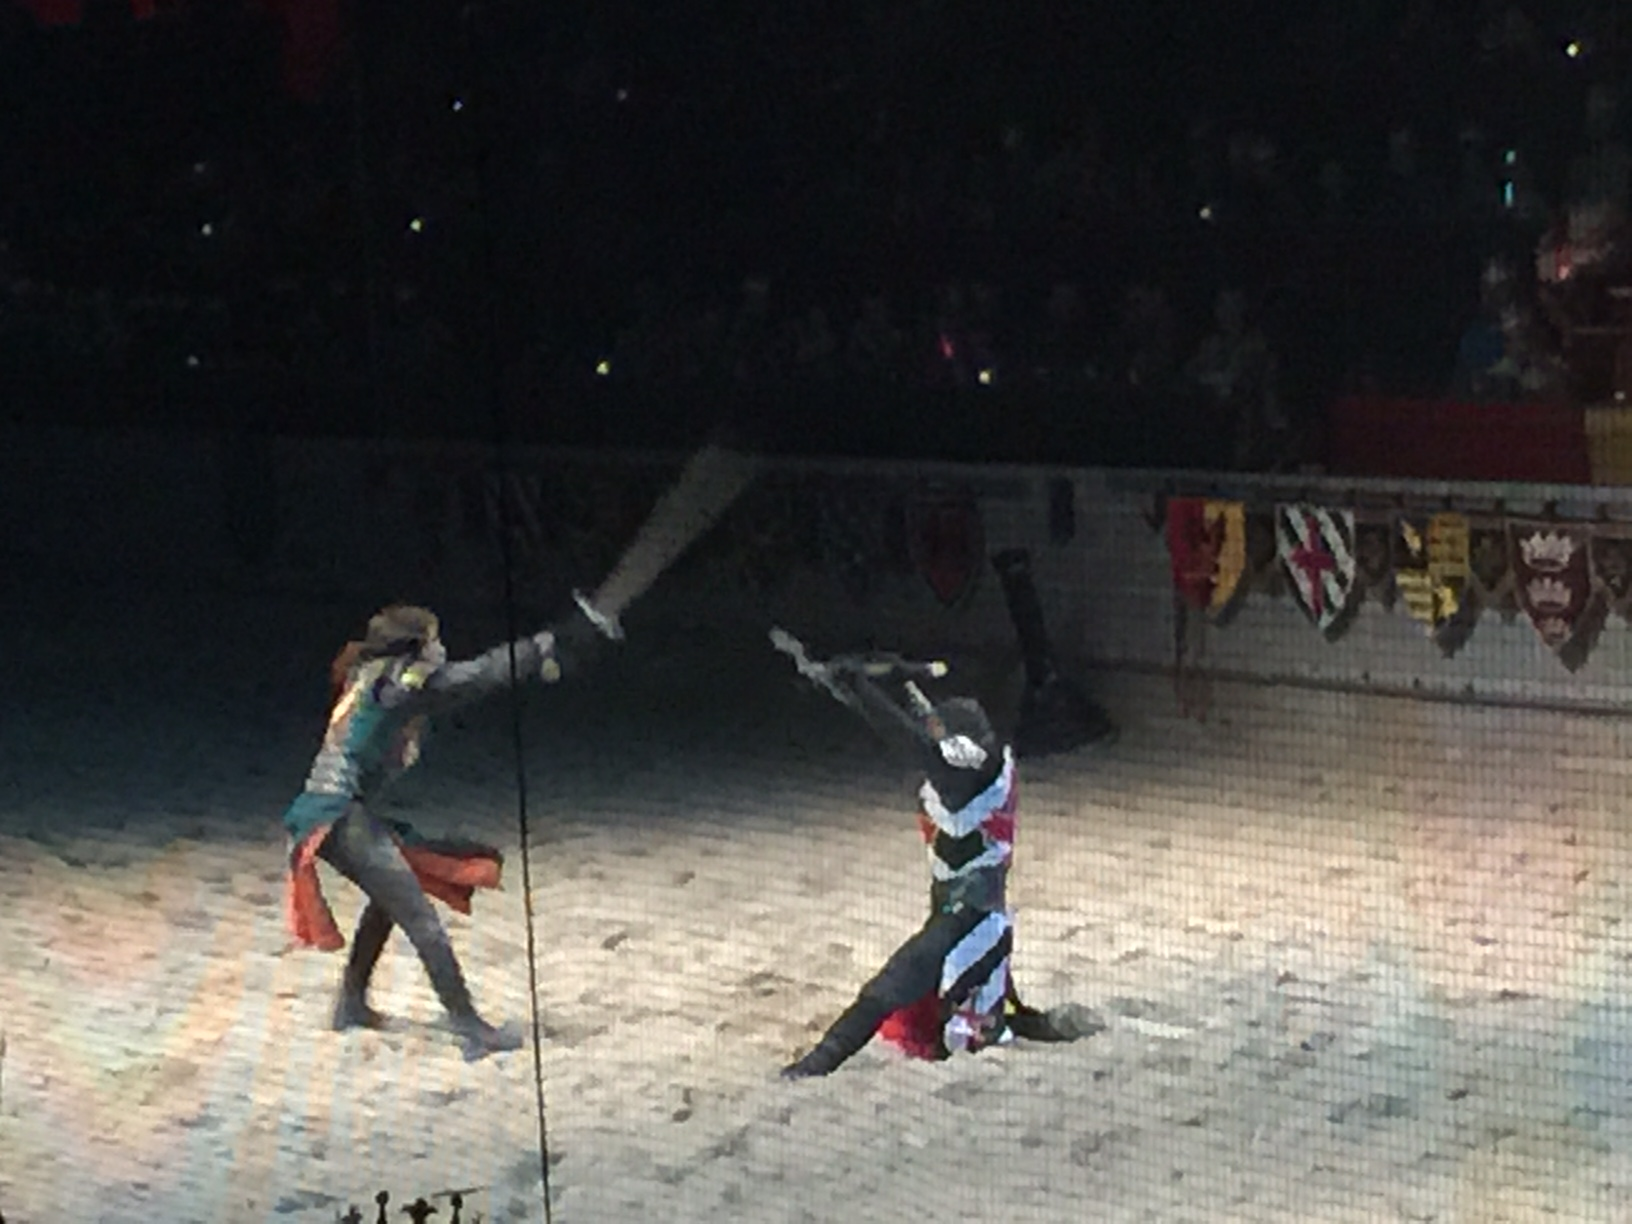 Medieval Times - Florida Resident Special Pricing Ticket OfferNow through Nov. 10, Florida residents can receive discounted admission at Medieval Times Dinner & Tournament in Orlando! Save over 40% regular Medieval Times Tickets when you present a valid Florida Driver's License at the door or .